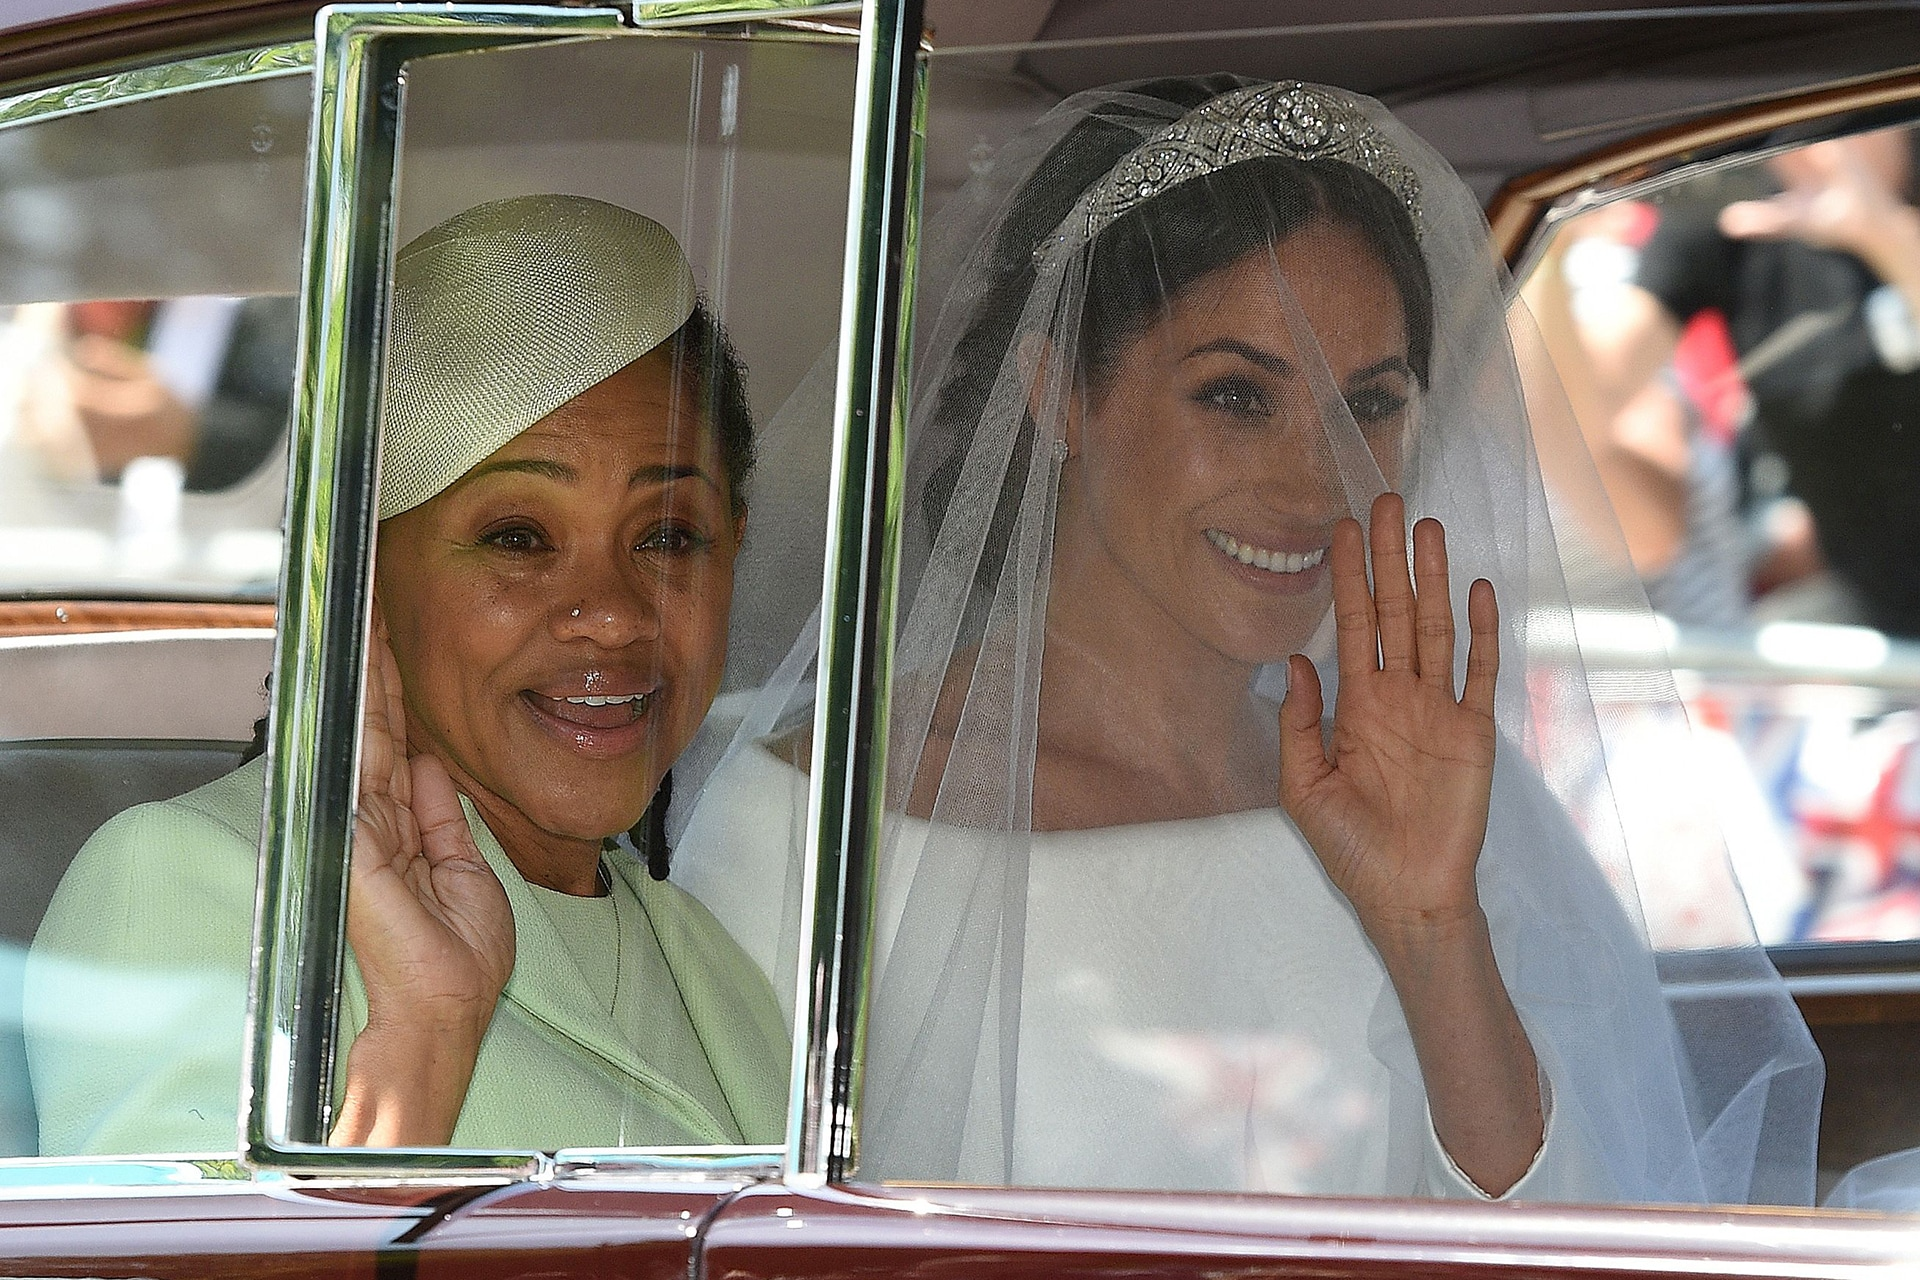 Meghan Markle's mother, Doria Ragland is the most emotional guest at the royal wedding